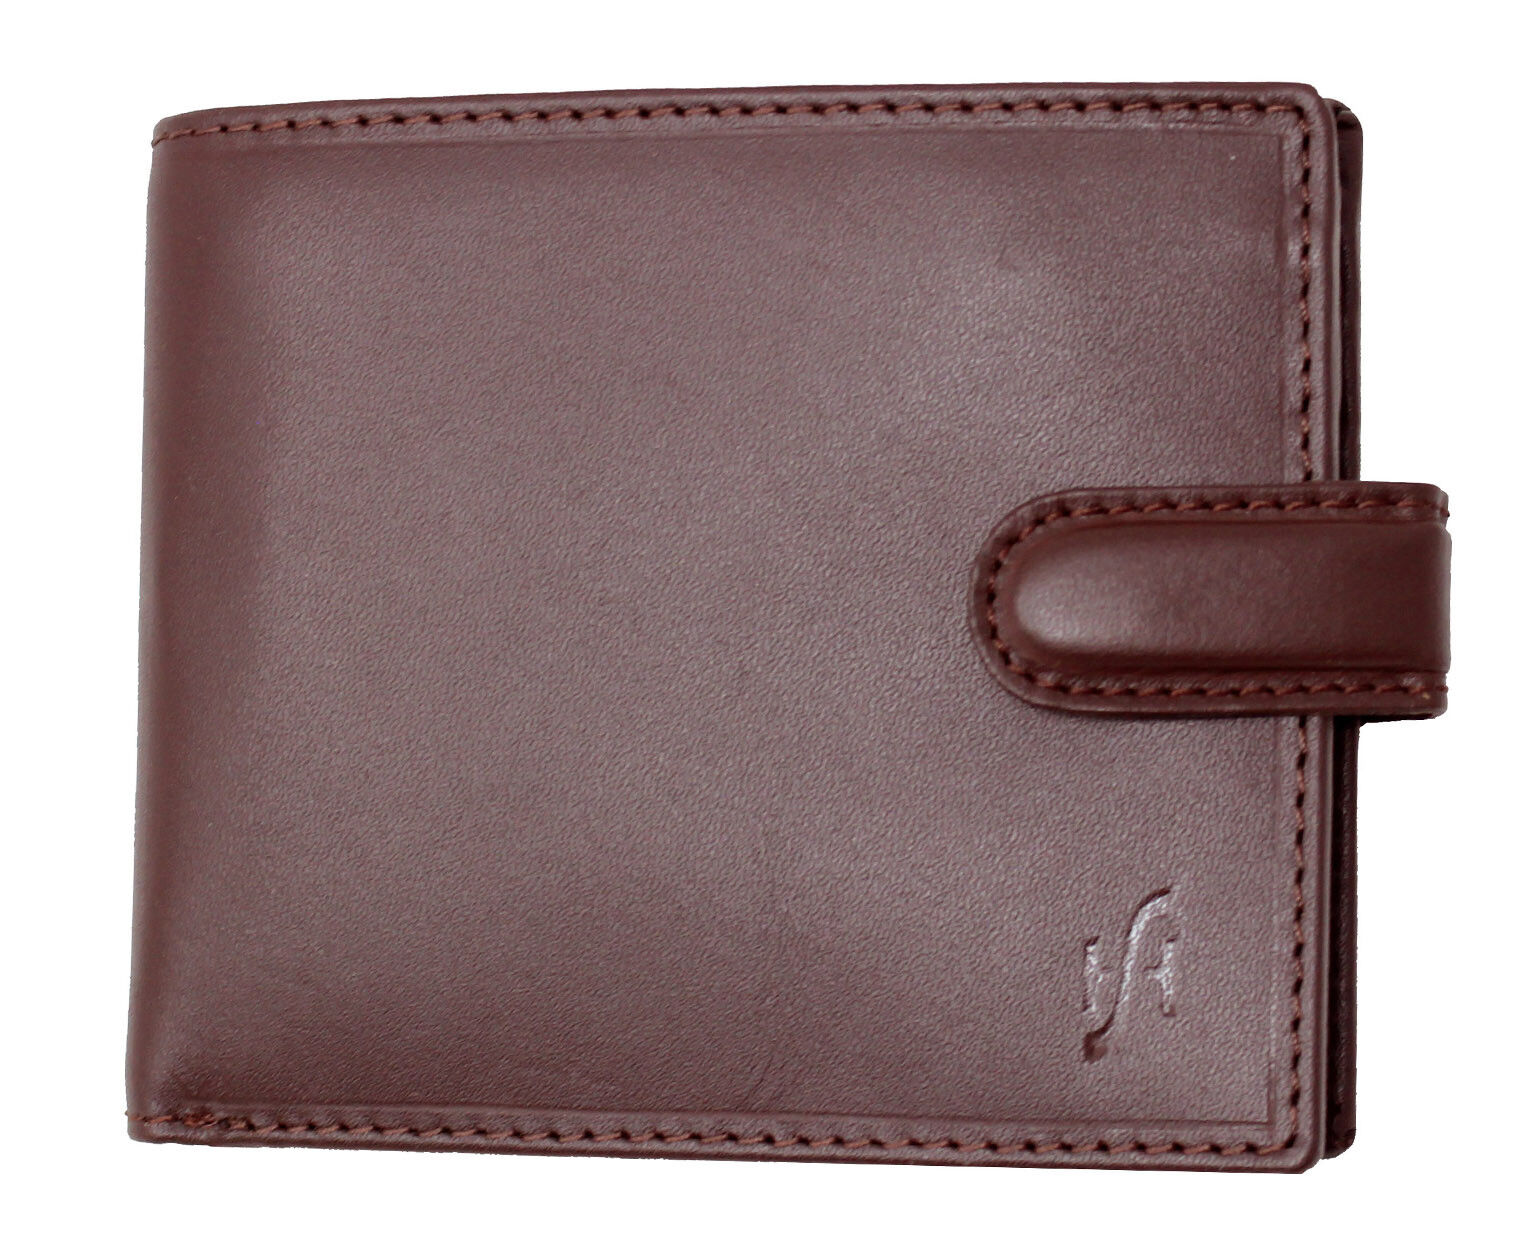 Mens RFID Blocking Soft Leather Billfold Wallet Brown